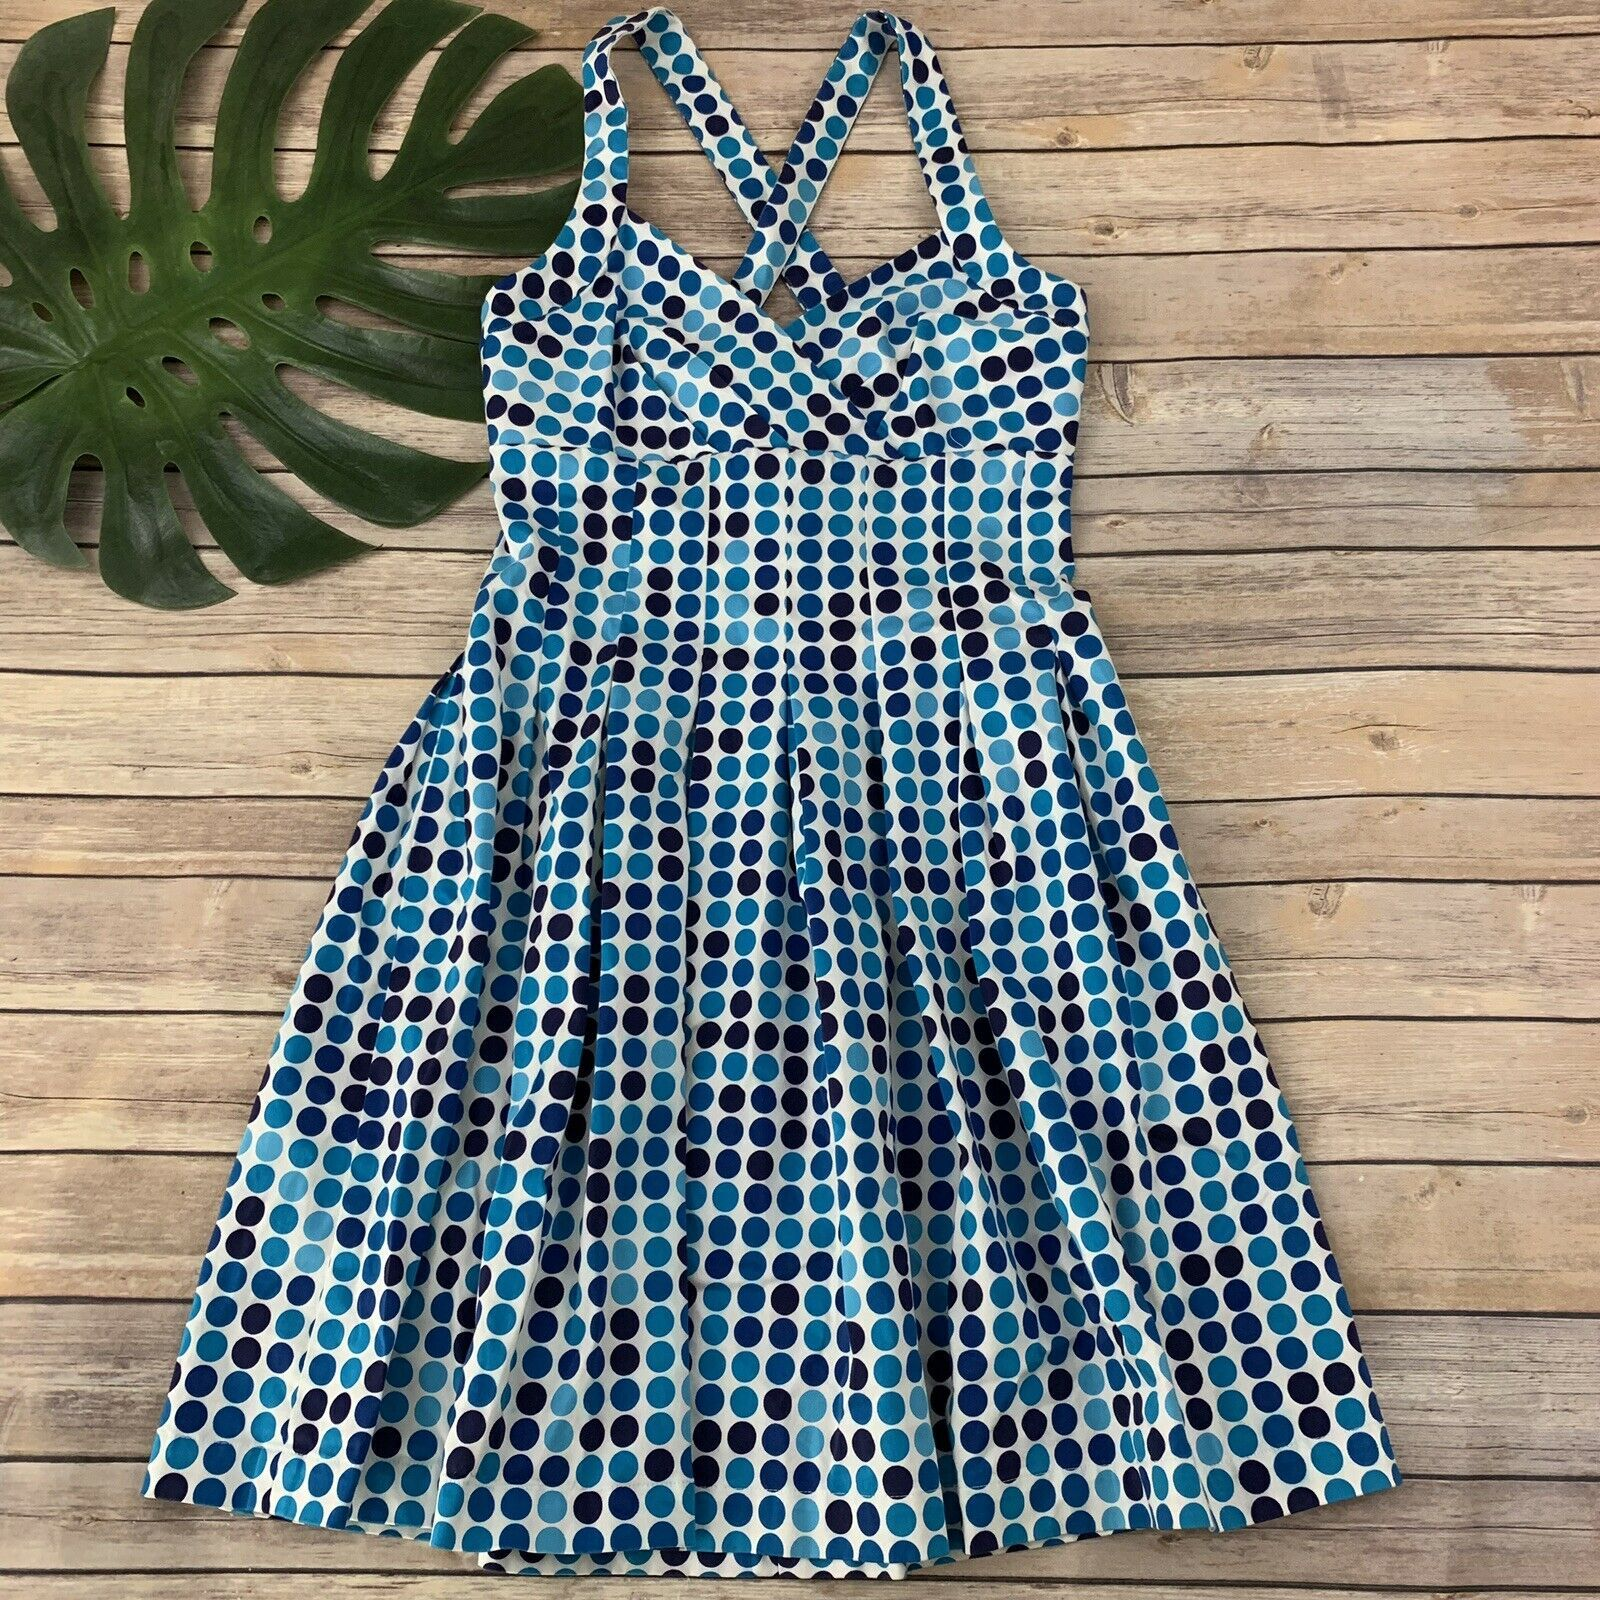 Primary image for Calvin Klein Polka Dot Dress Size 6 Blue White Fit Flare Knee Length Pleats